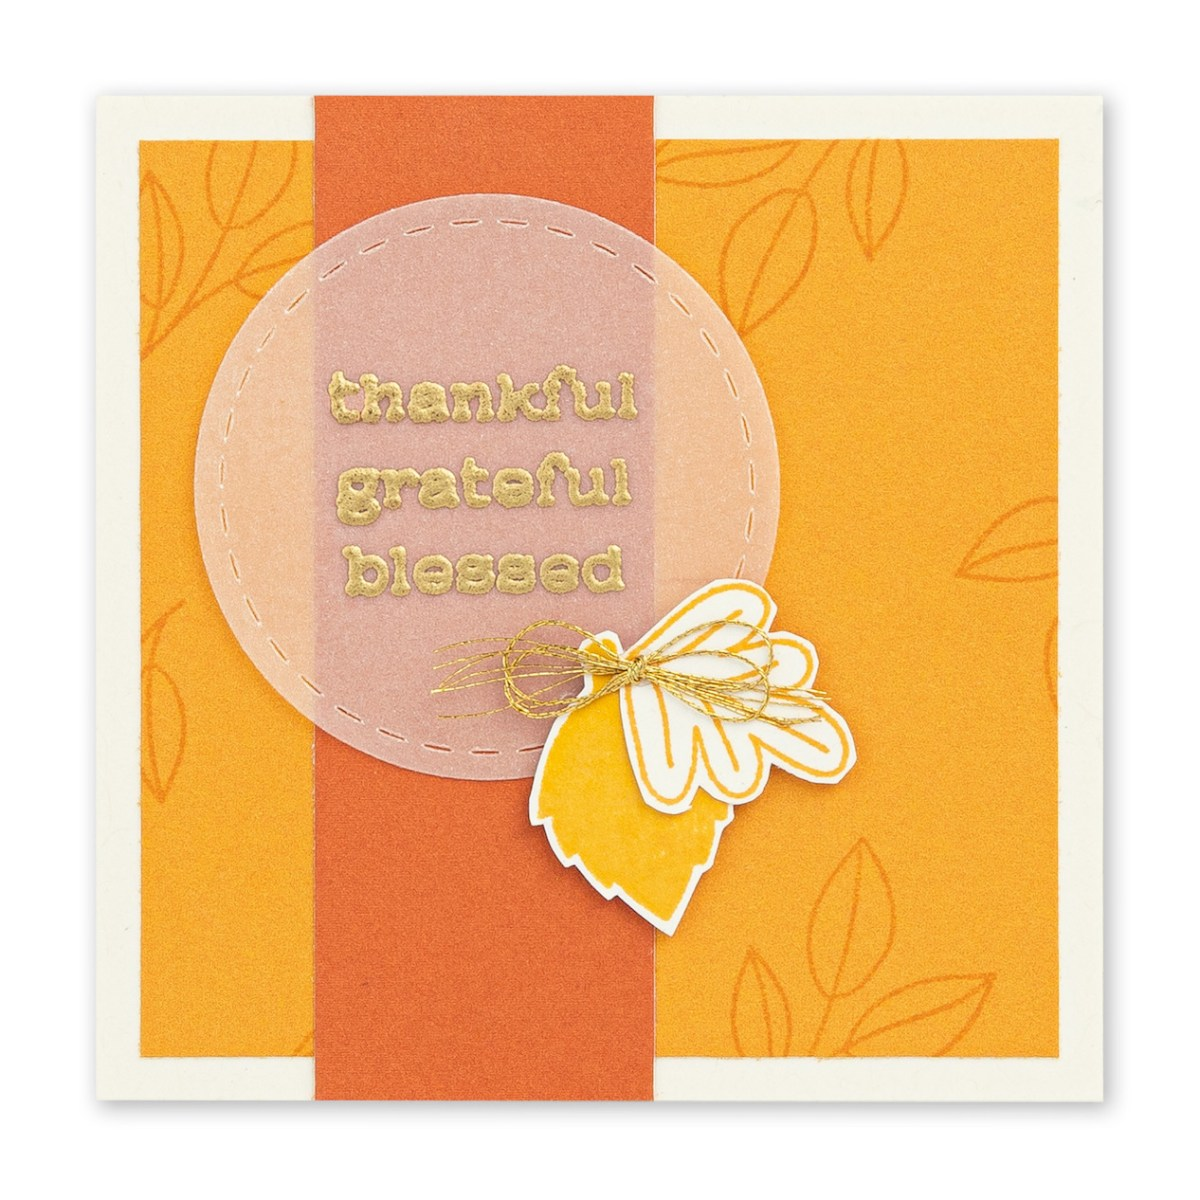 Basic Stamping Techniques #ctmh #closetomyheart #ctmhnsm #nationalstampingmonth #stampingtechniques #cardmaking #embossing #vellum #fall #autumn #thankful #grateful #blessed